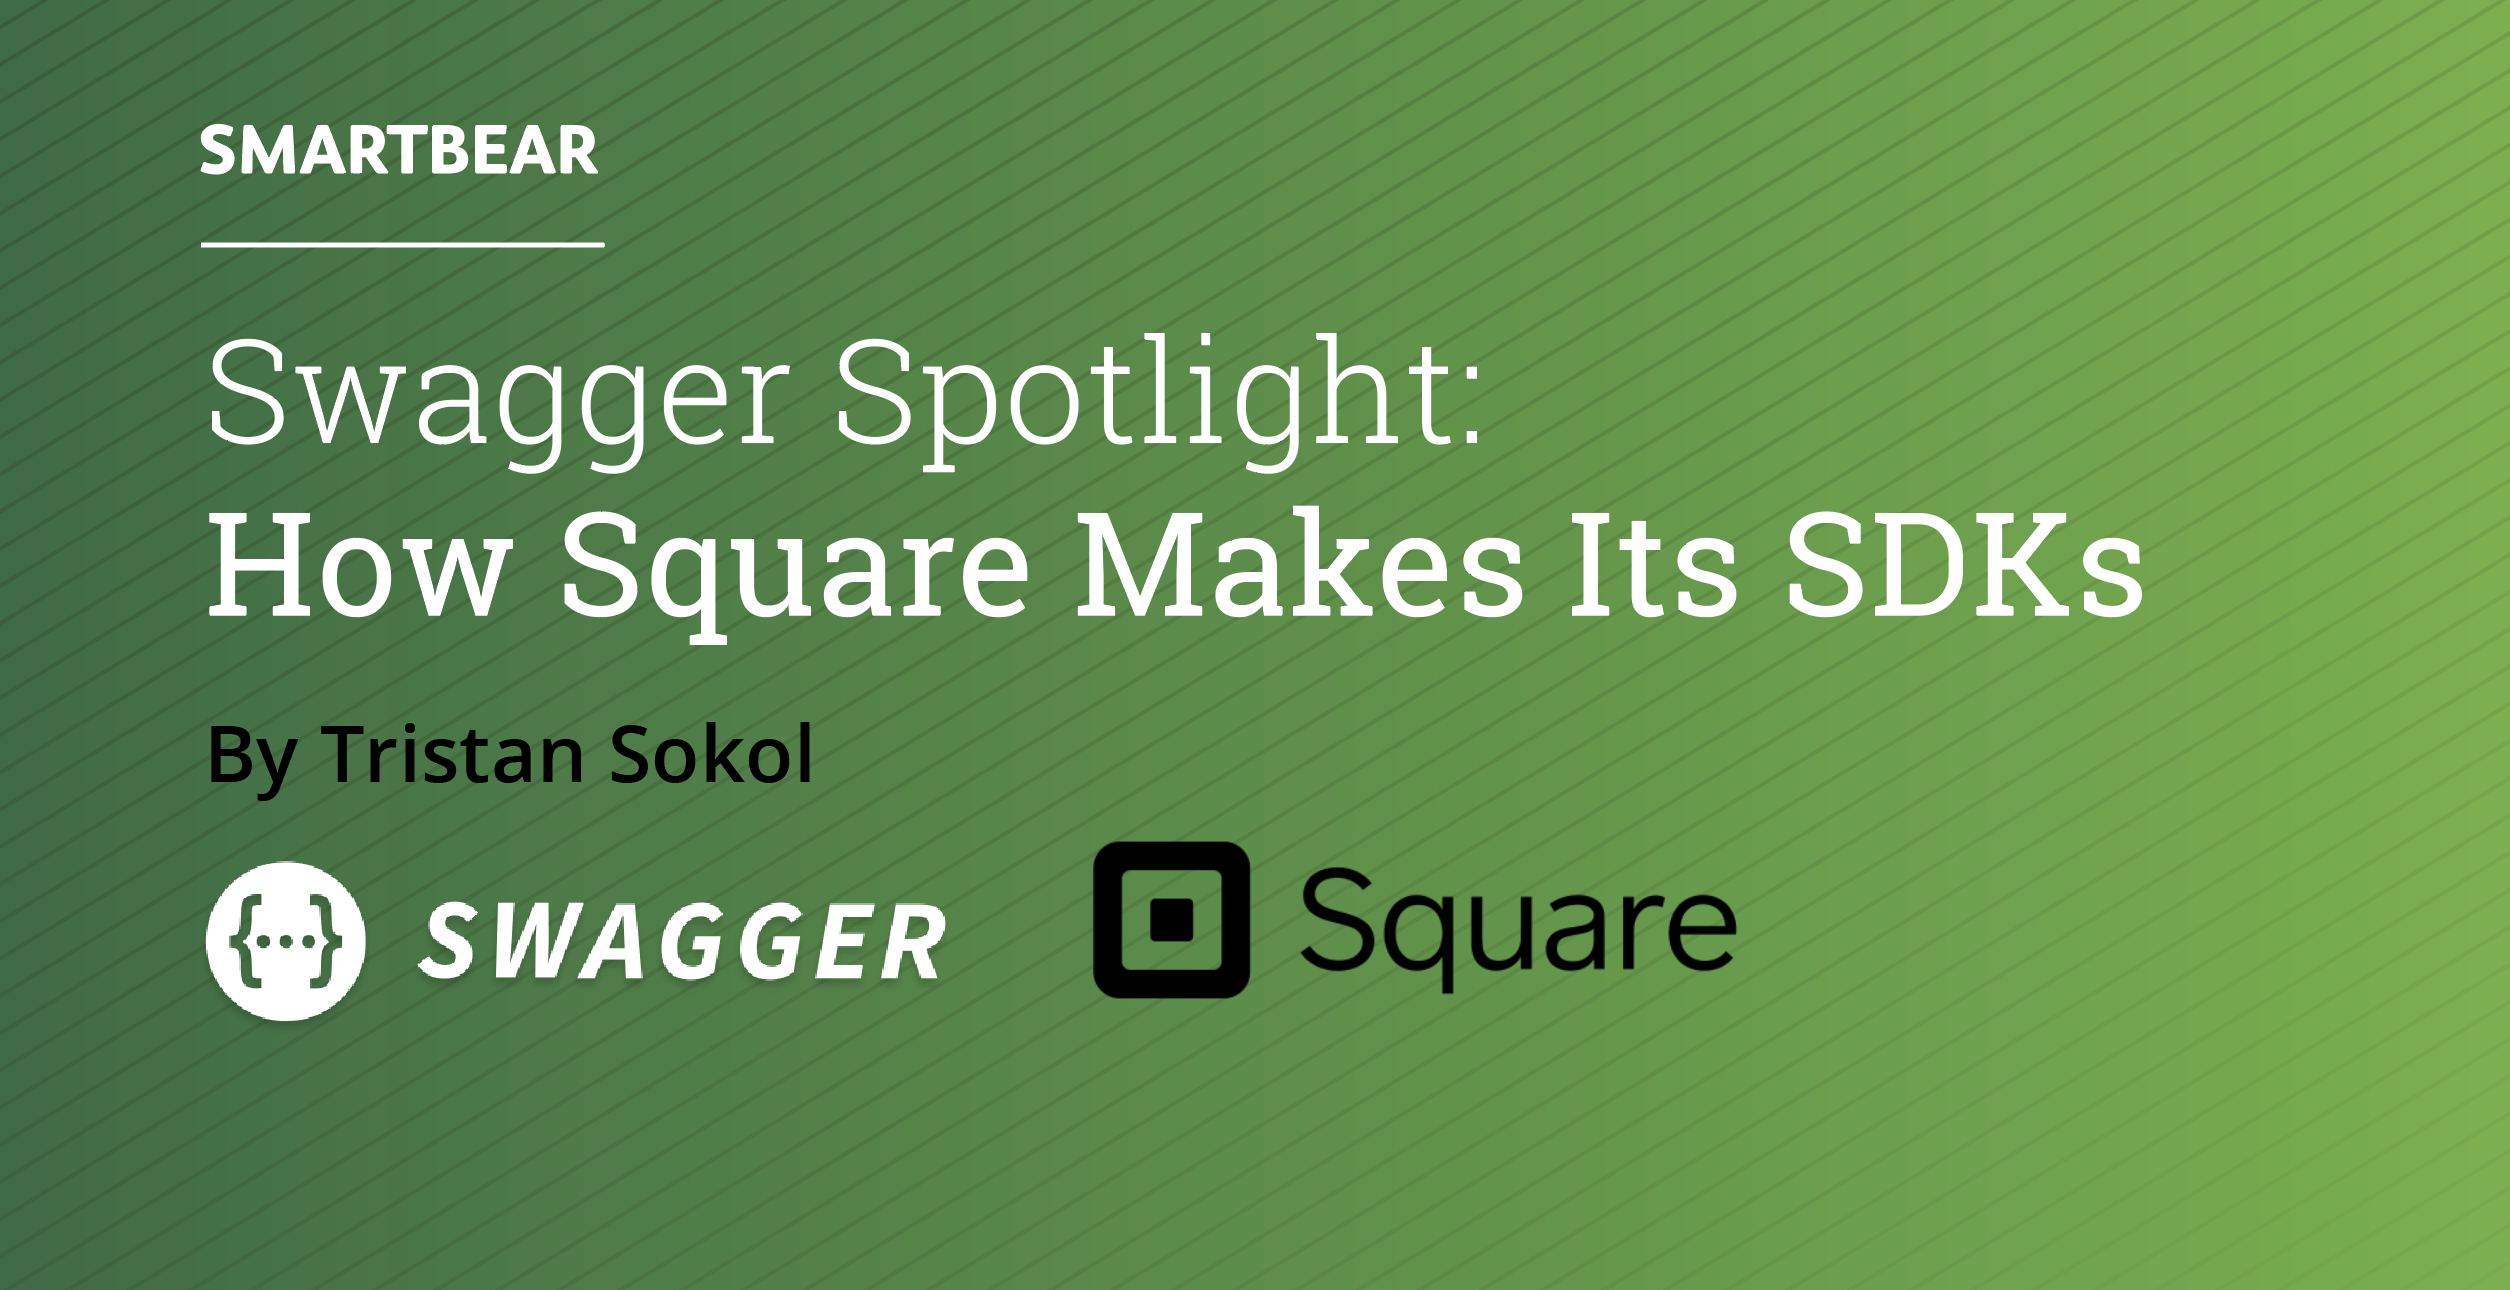 Swagger Spotlight: How Square Makes Its SDKs